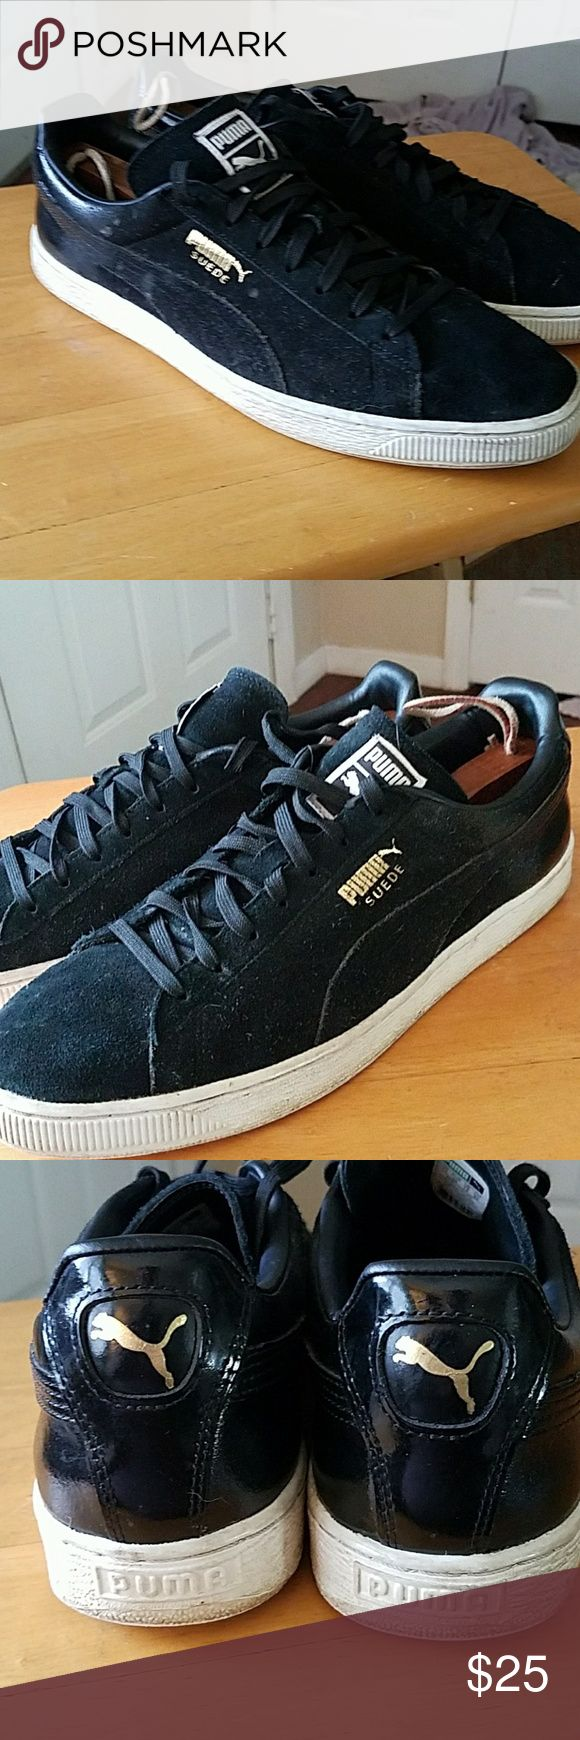 Puma  classic Clydes in size 12 Mens Classic Clydes in size 12, these were a limited edition with the polished heal to the classic suede  all black with the gold branding. These have a few water spots on the suede but does not effect the classic coolness. Price is firm. Puma Shoes Athletic Shoes